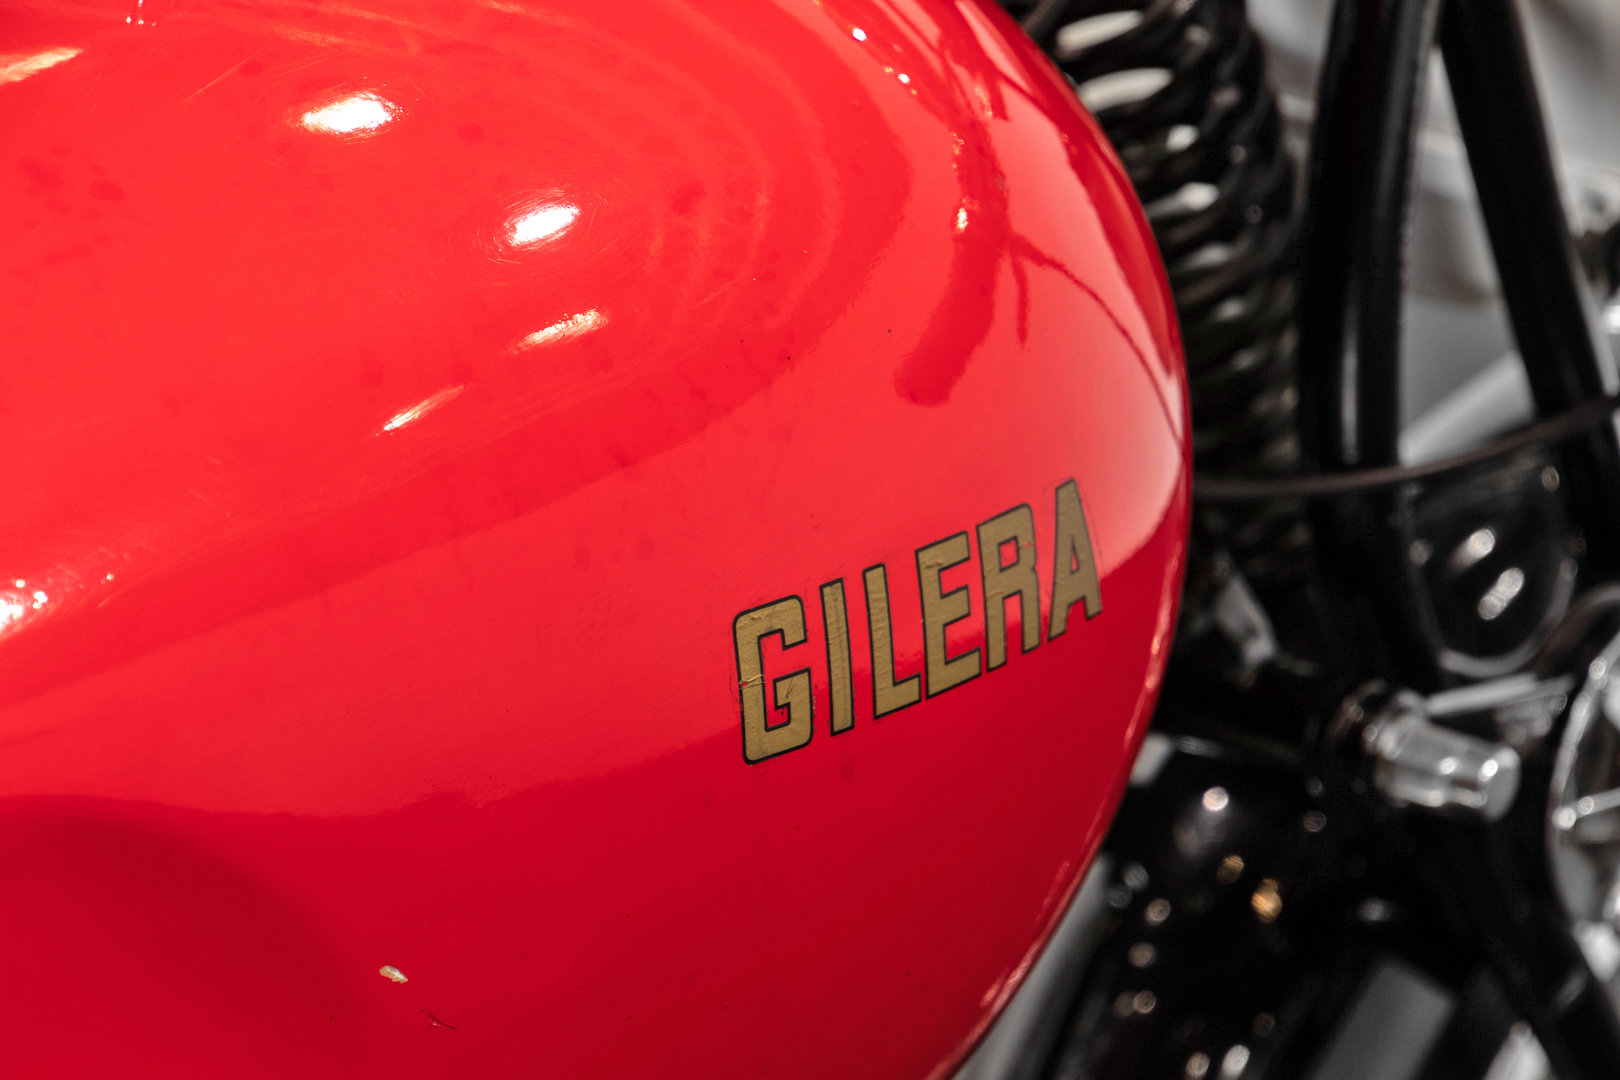 GILERA - 500 8 BULLONI - 1940 For Sale (picture 6 of 6)